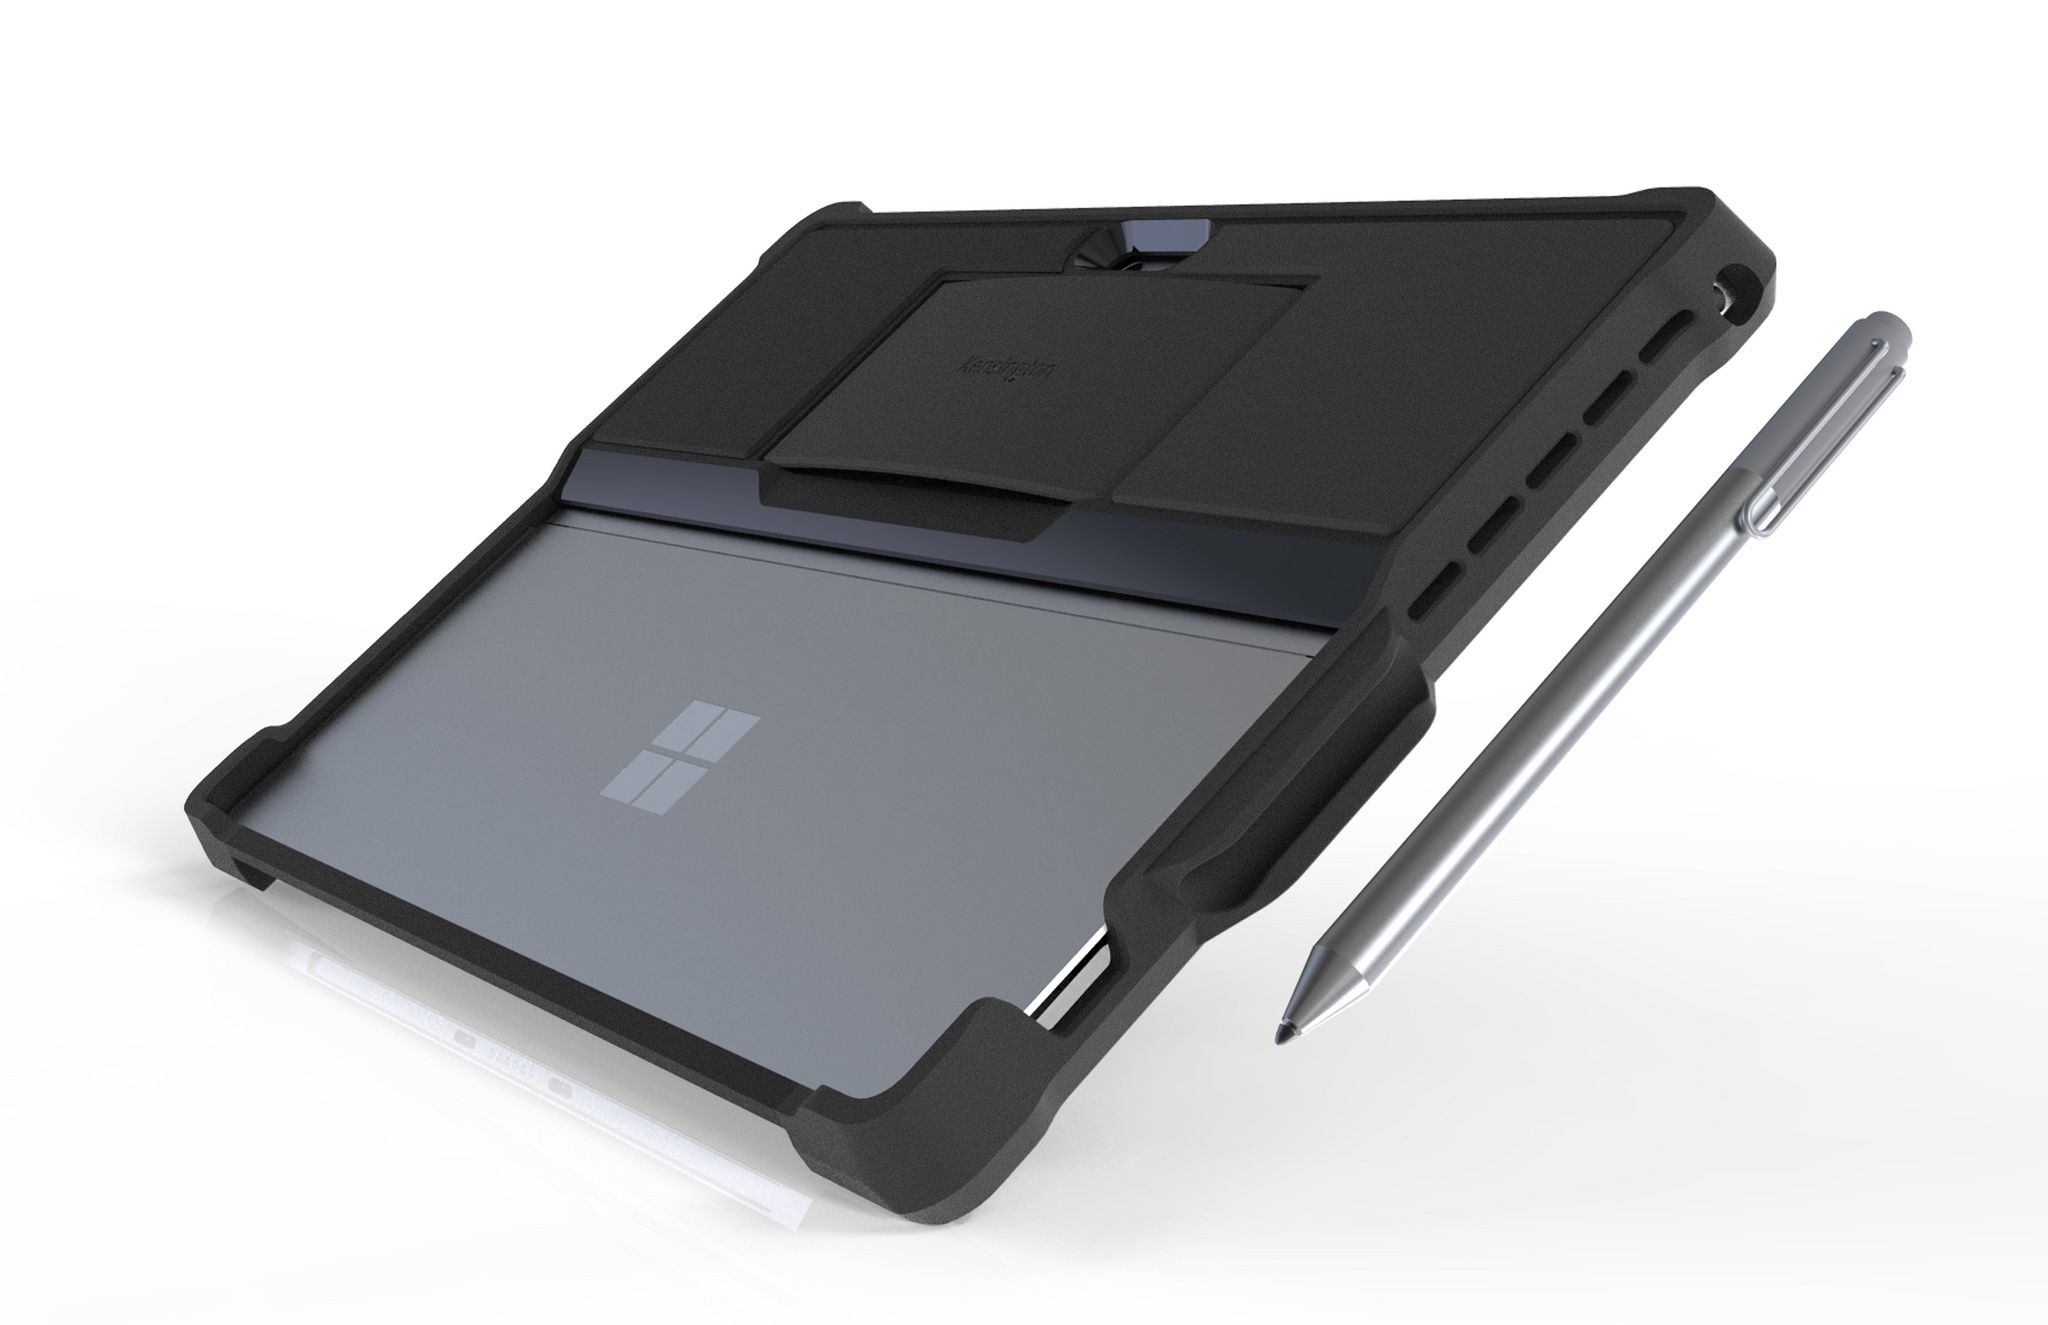 Kensington Offers A Rugged Case To Protect Microsoft39s